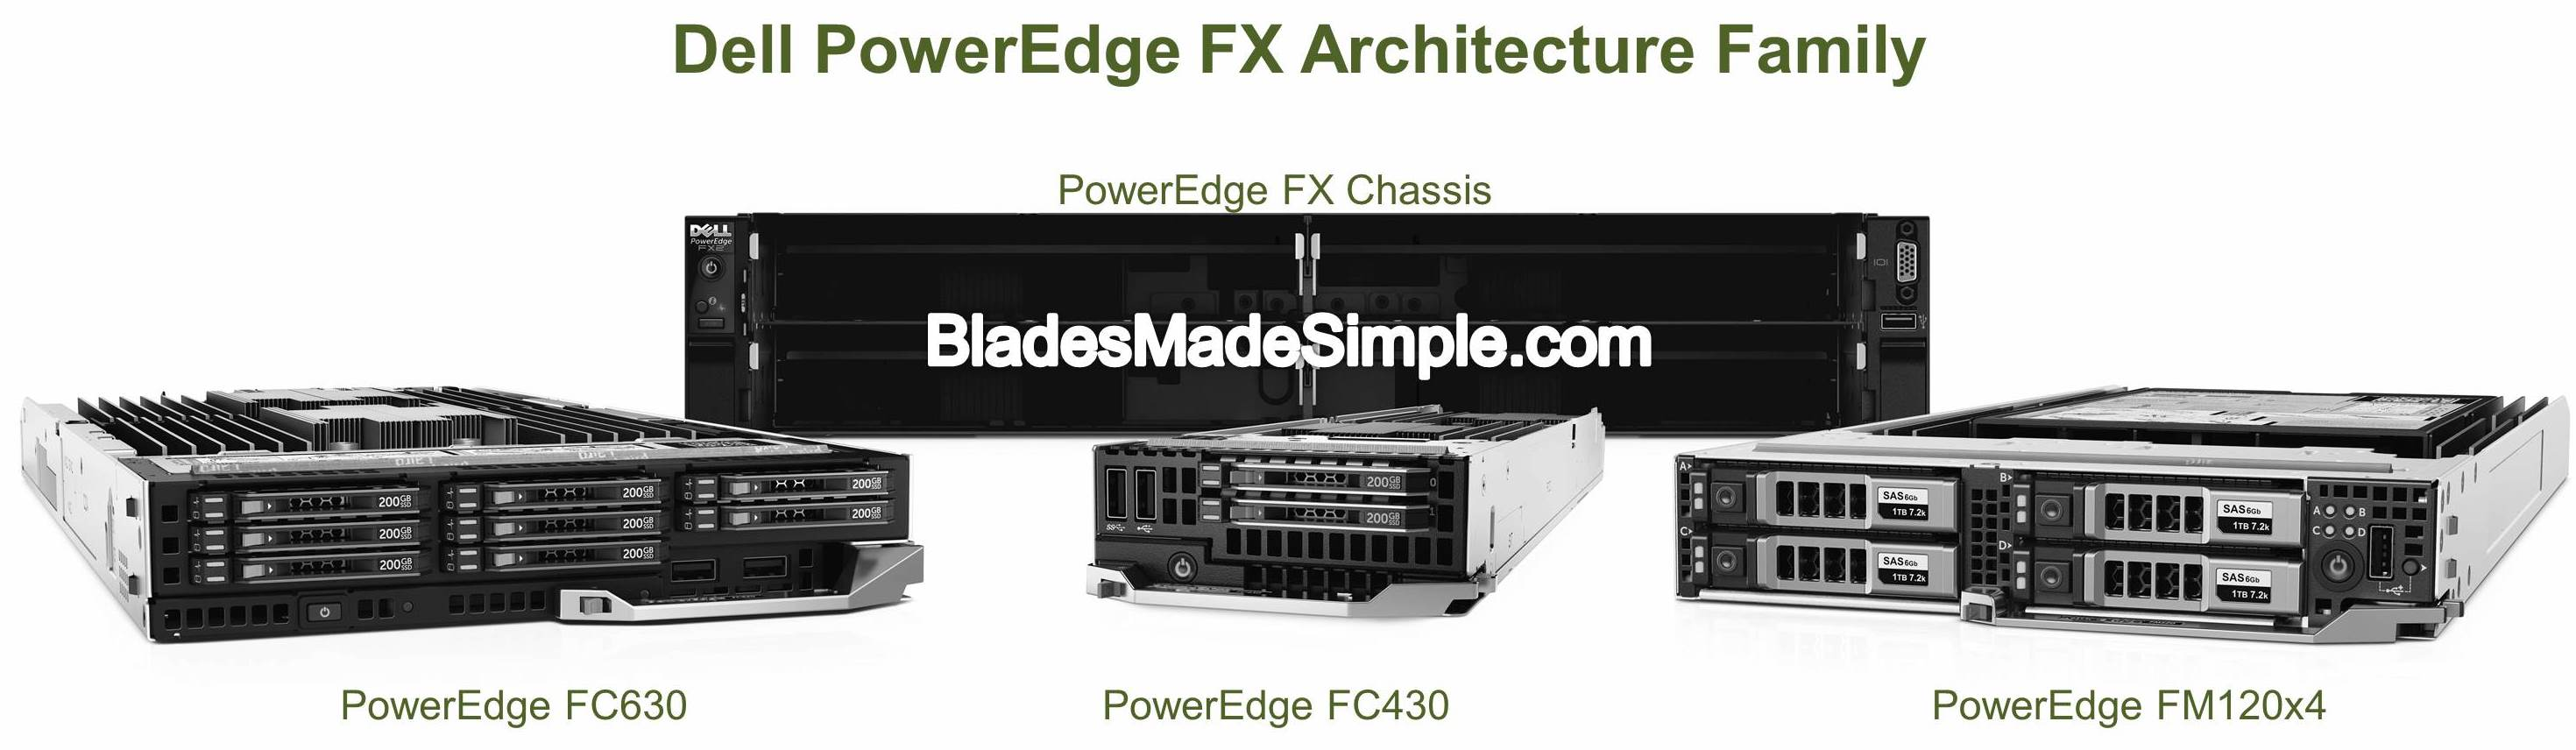 Dell PowerEdge FX Architecture Family